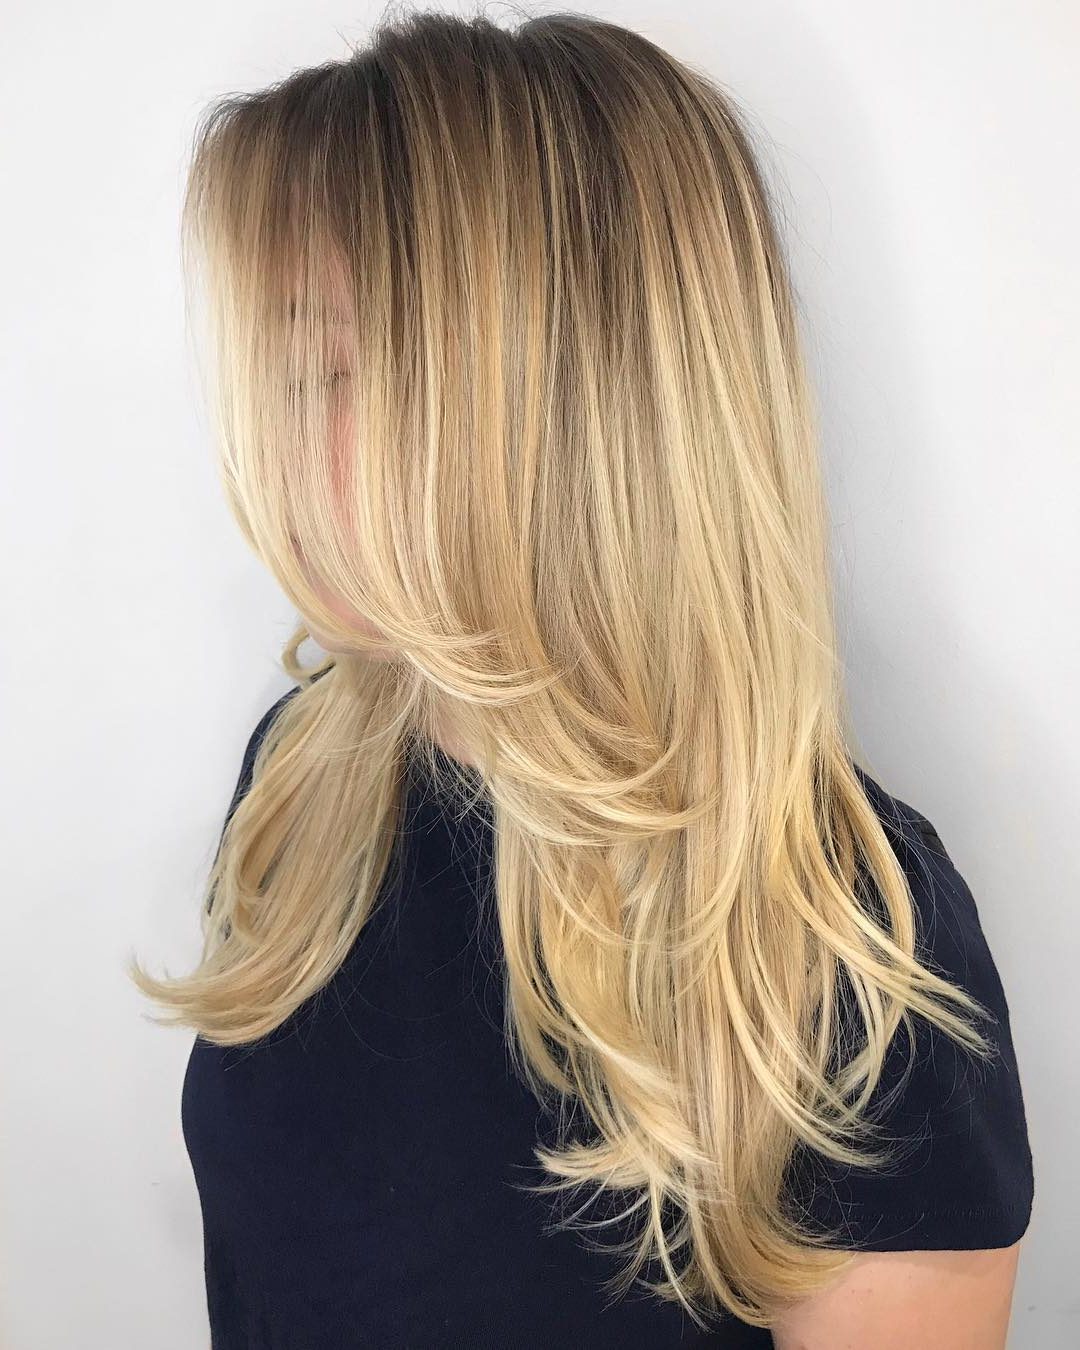 Widely Used Shiny Caramel Layers Long Shag Haircuts Inside How To Nail Layered Hair In 2019: Full Guide To Lengths And (View 14 of 20)